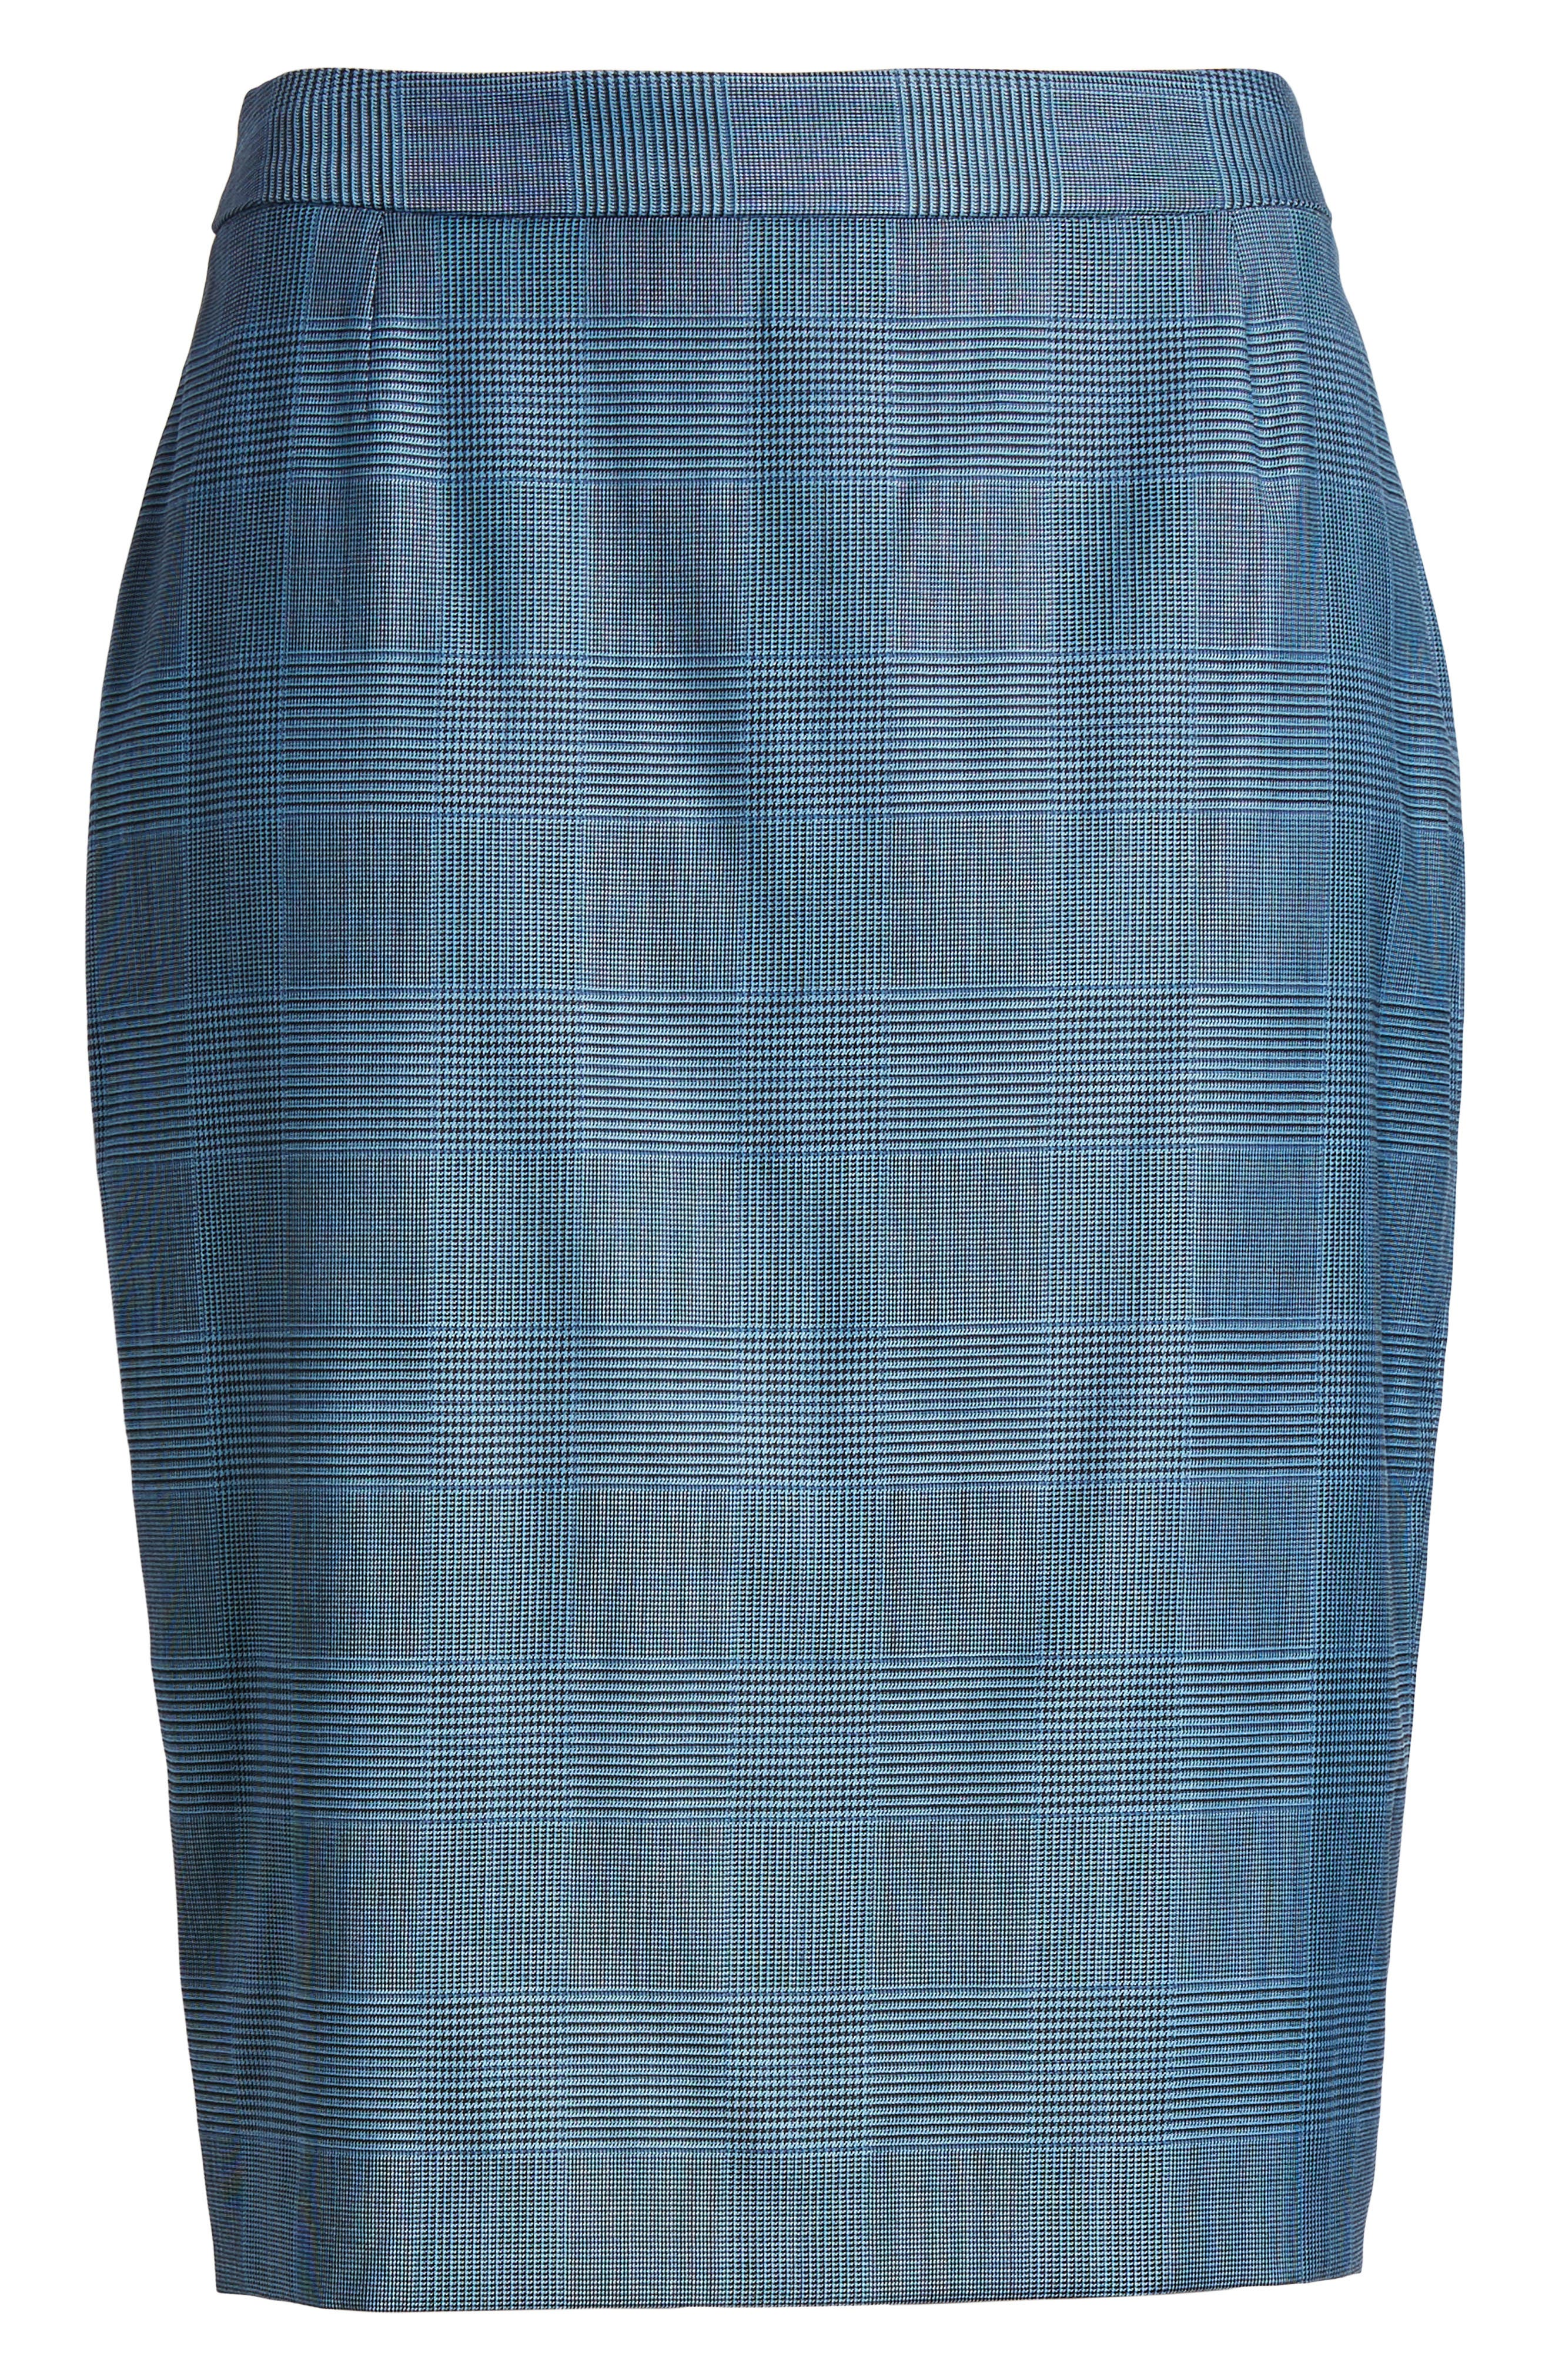 Vimena Glencheck Stretch Wool Pencil Skirt,                             Alternate thumbnail 6, color,